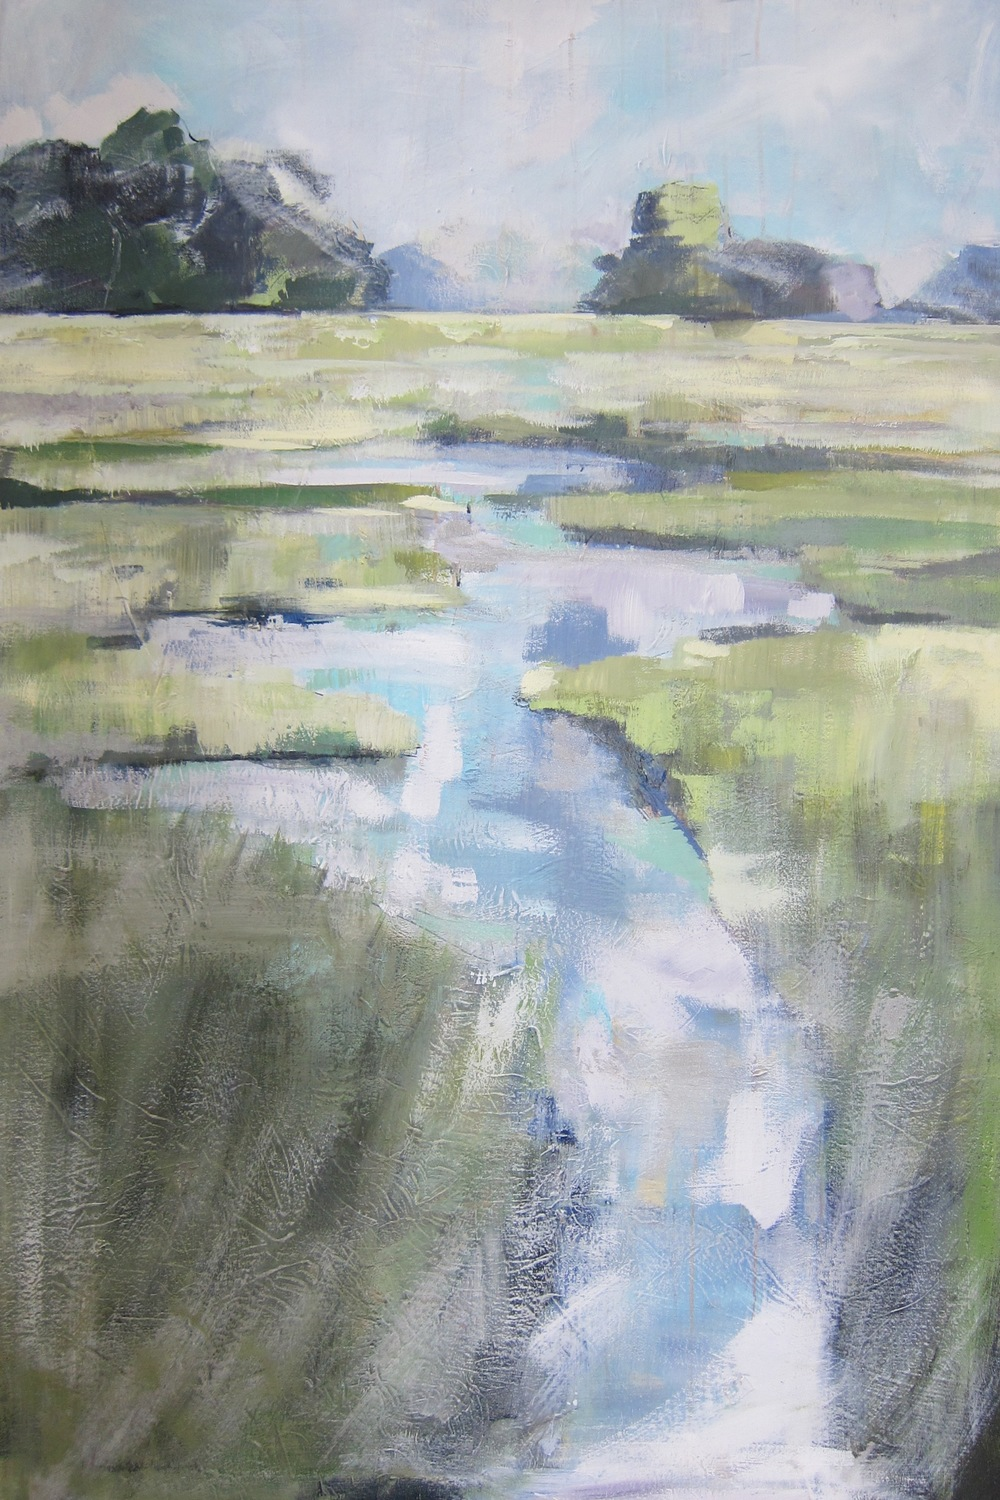 """Mint Marsh"" 54X36 IN Acrylic on Canvas   $2,400"